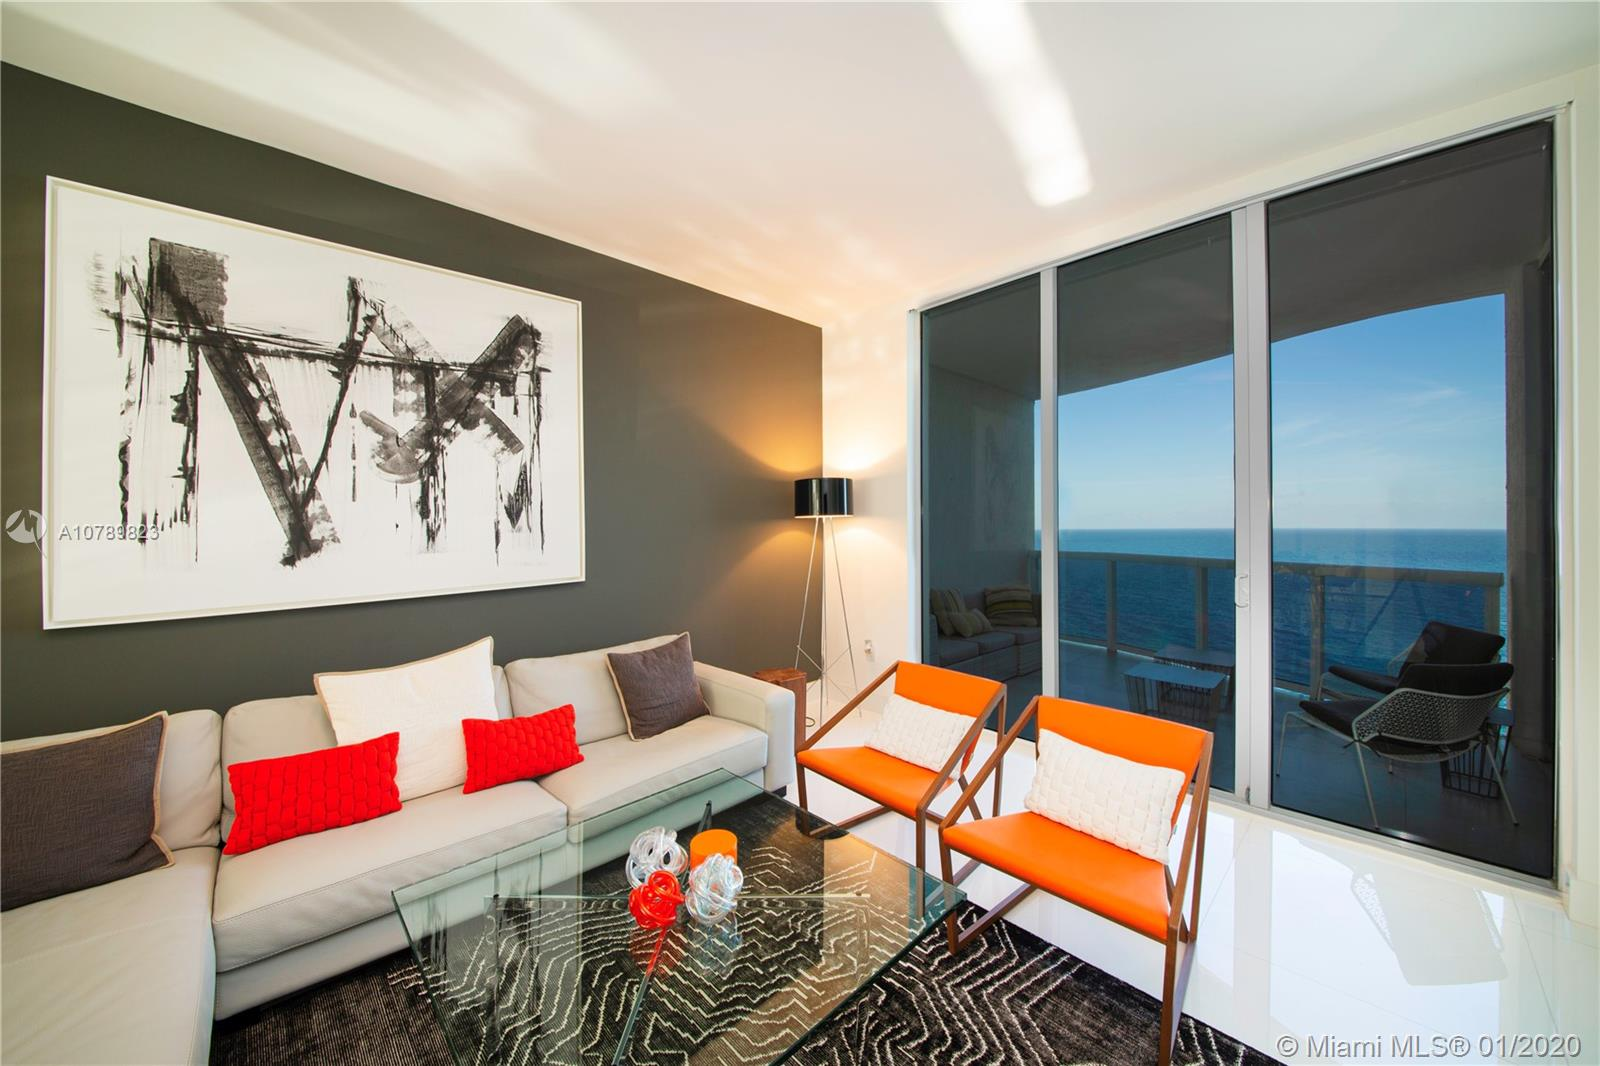 15811 Collins Ave, 1604 - Sunny Isles Beach, Florida